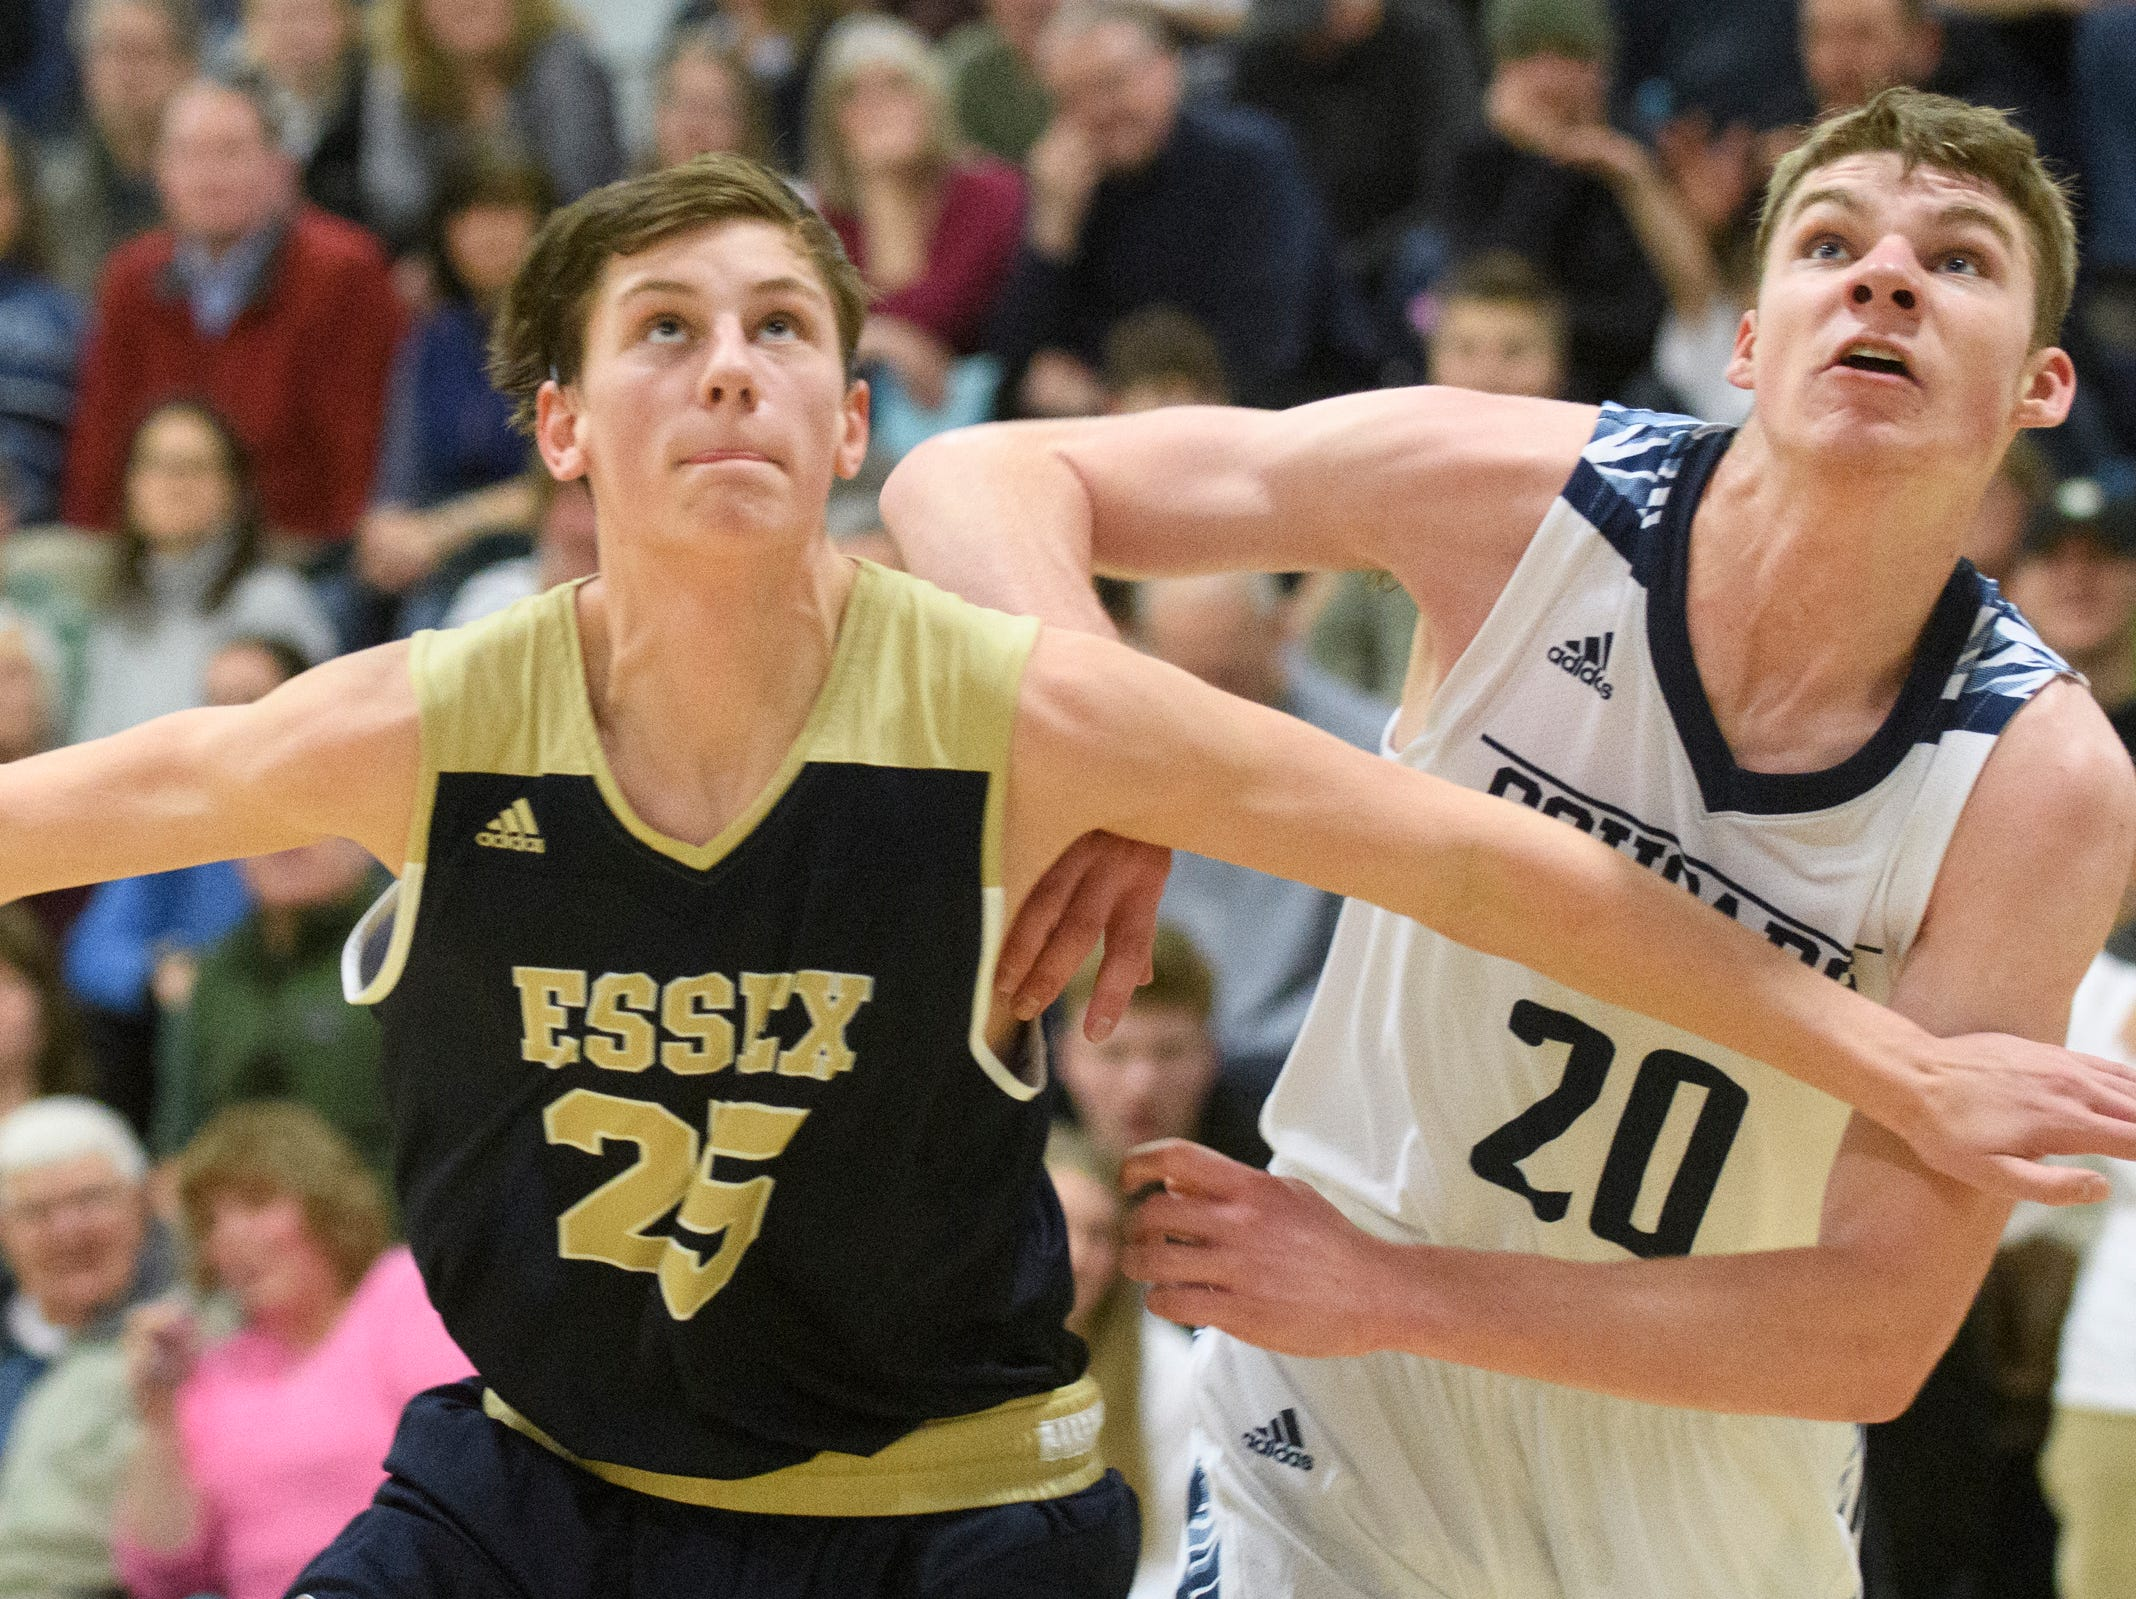 Essex's Mitchell Moffatt (25) and Connor Philbrick (20) battle for position on the free throw during the boys basketball game between the Essex Hornets and the Mount Mansfield Cougars at MMU High School on Wednesday night February 13, 2019 in Jericho, Vermont.